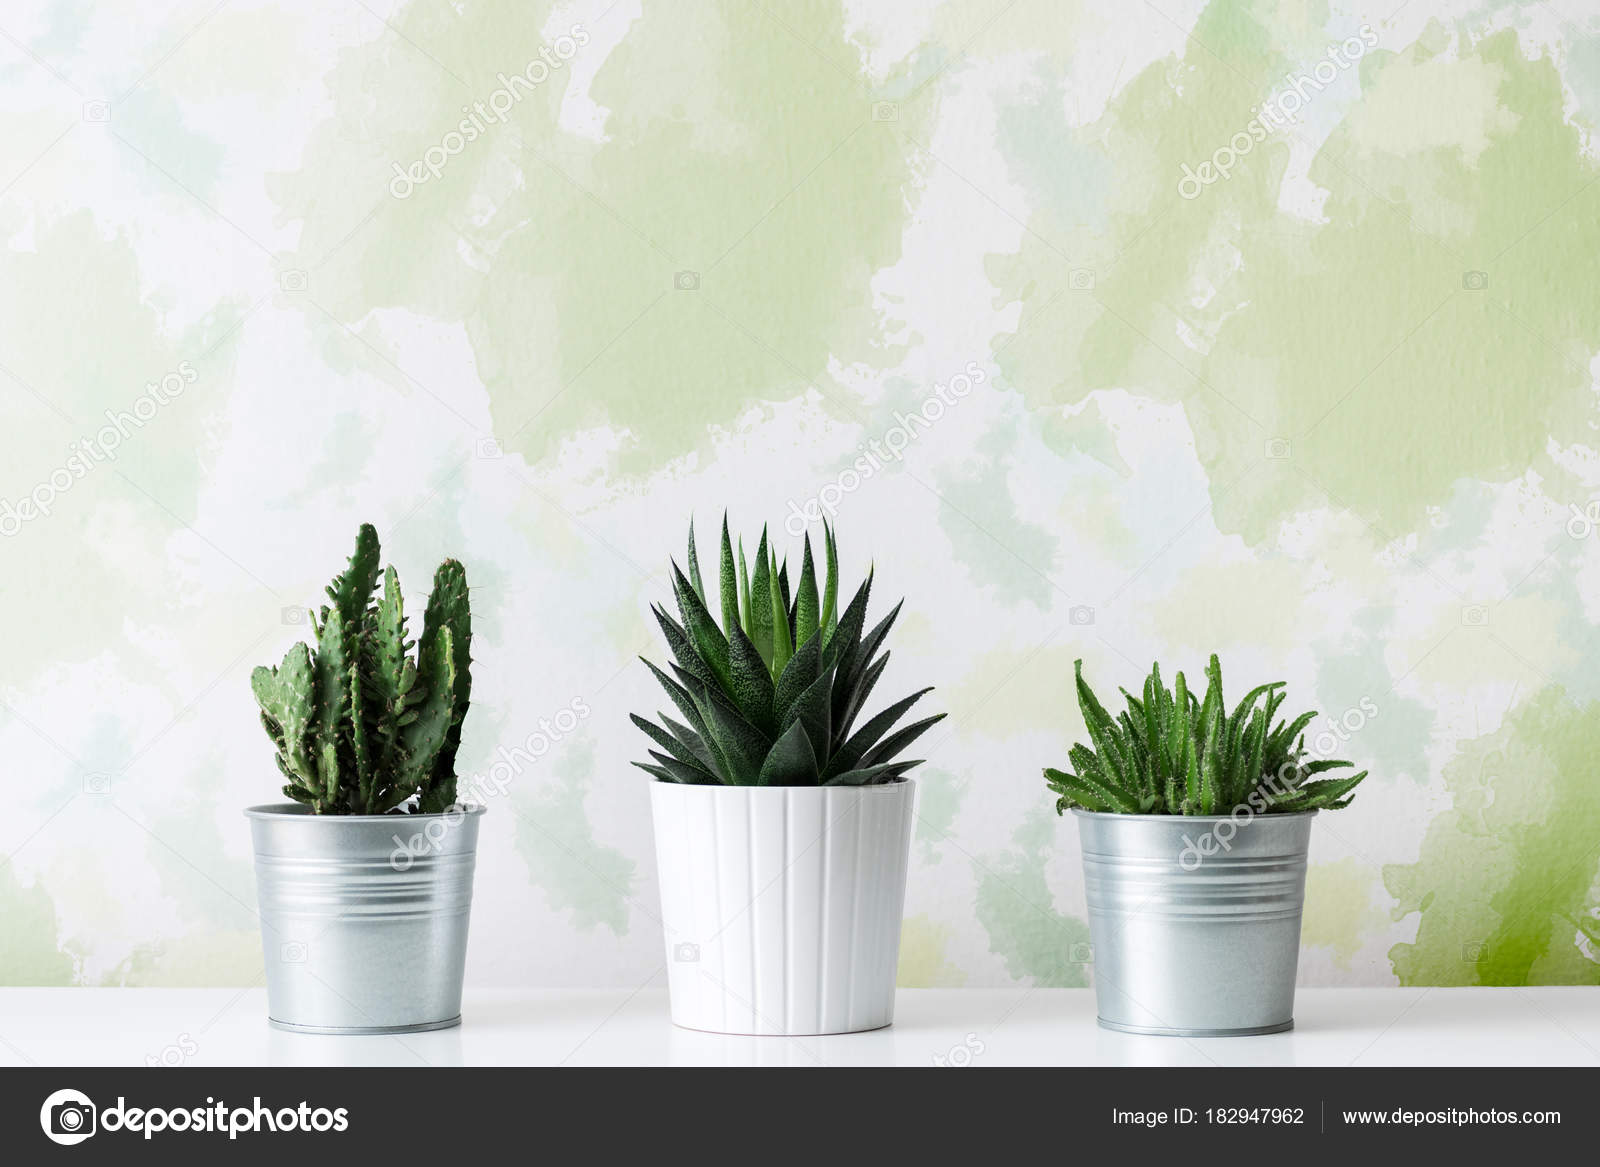 Collection Of Various Cactus And Succulent Plants In Different Pots. Potted  Cactus House Plants On White Shelf Against Unusual Design Wall.